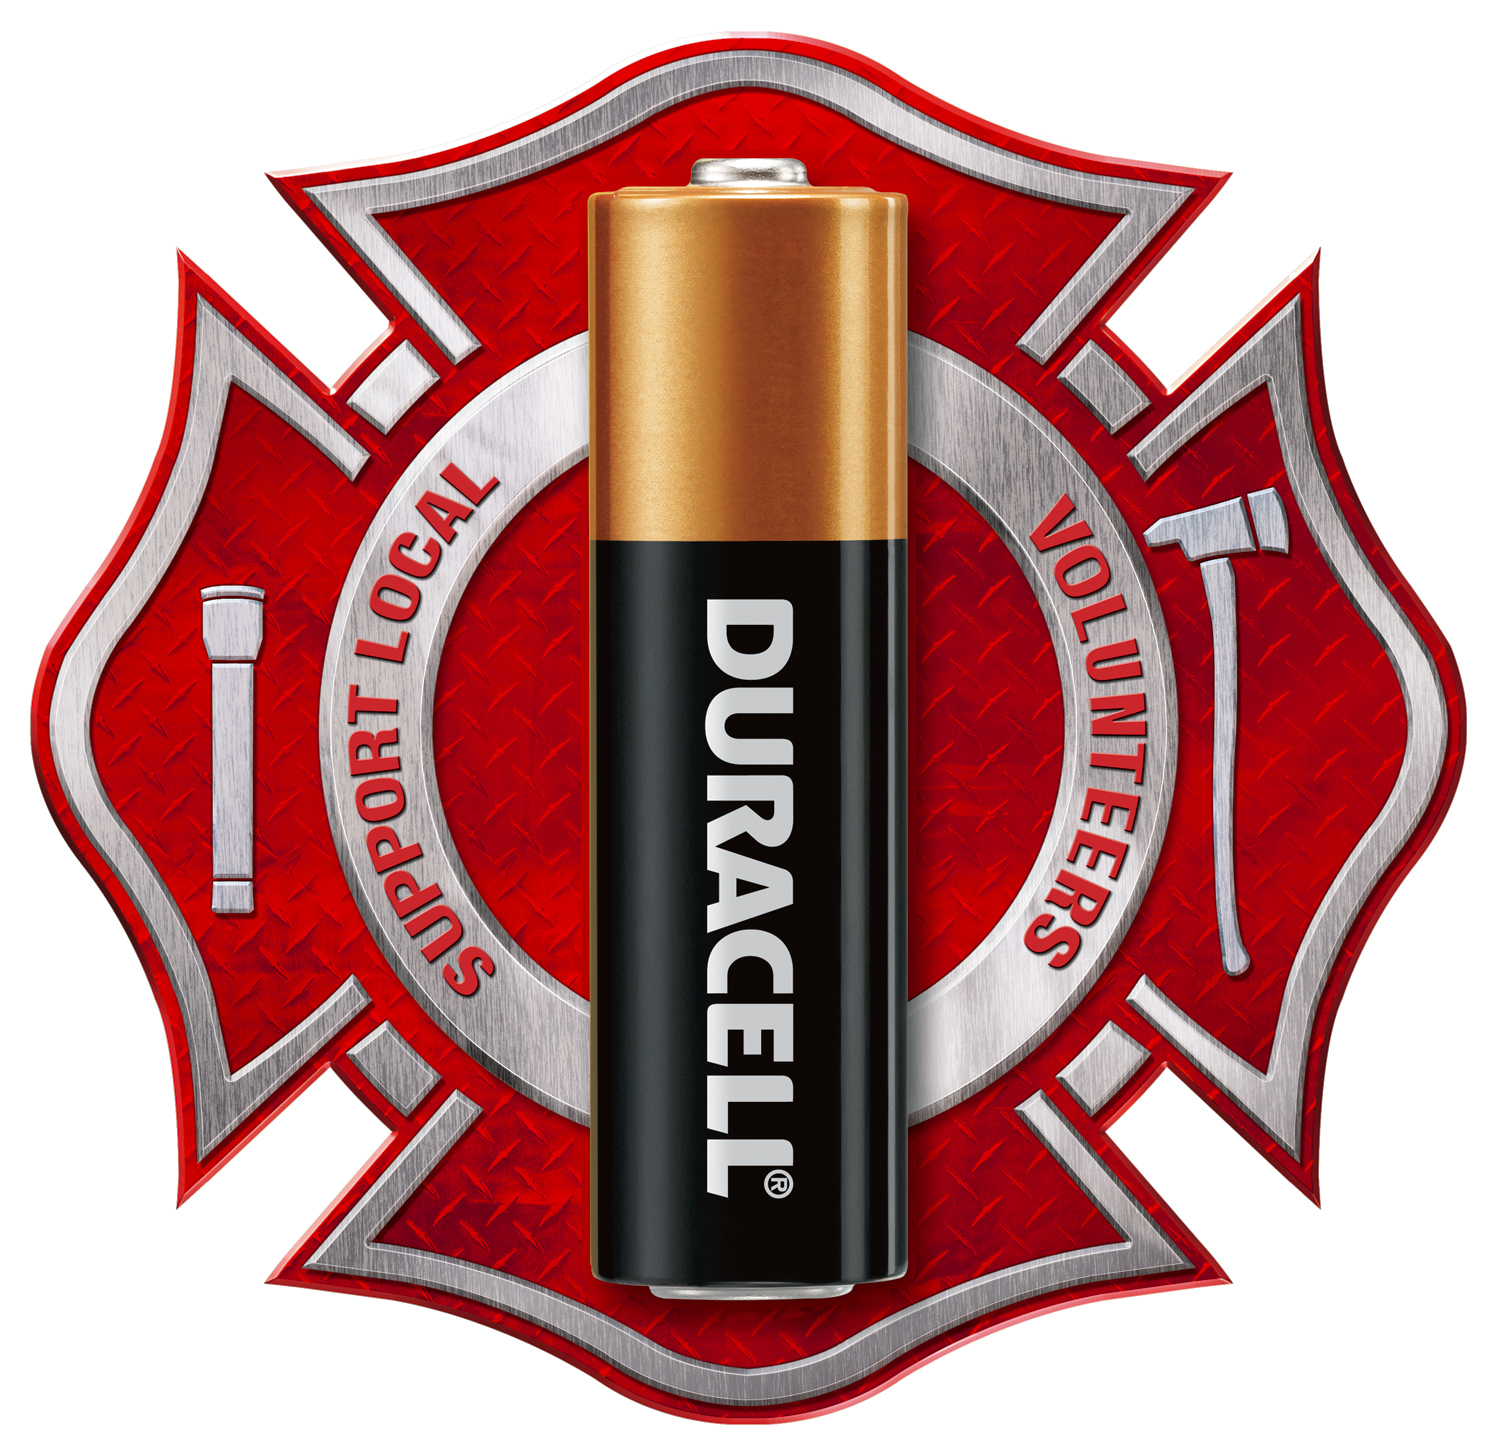 Duracell Volunteer Firefighter logo